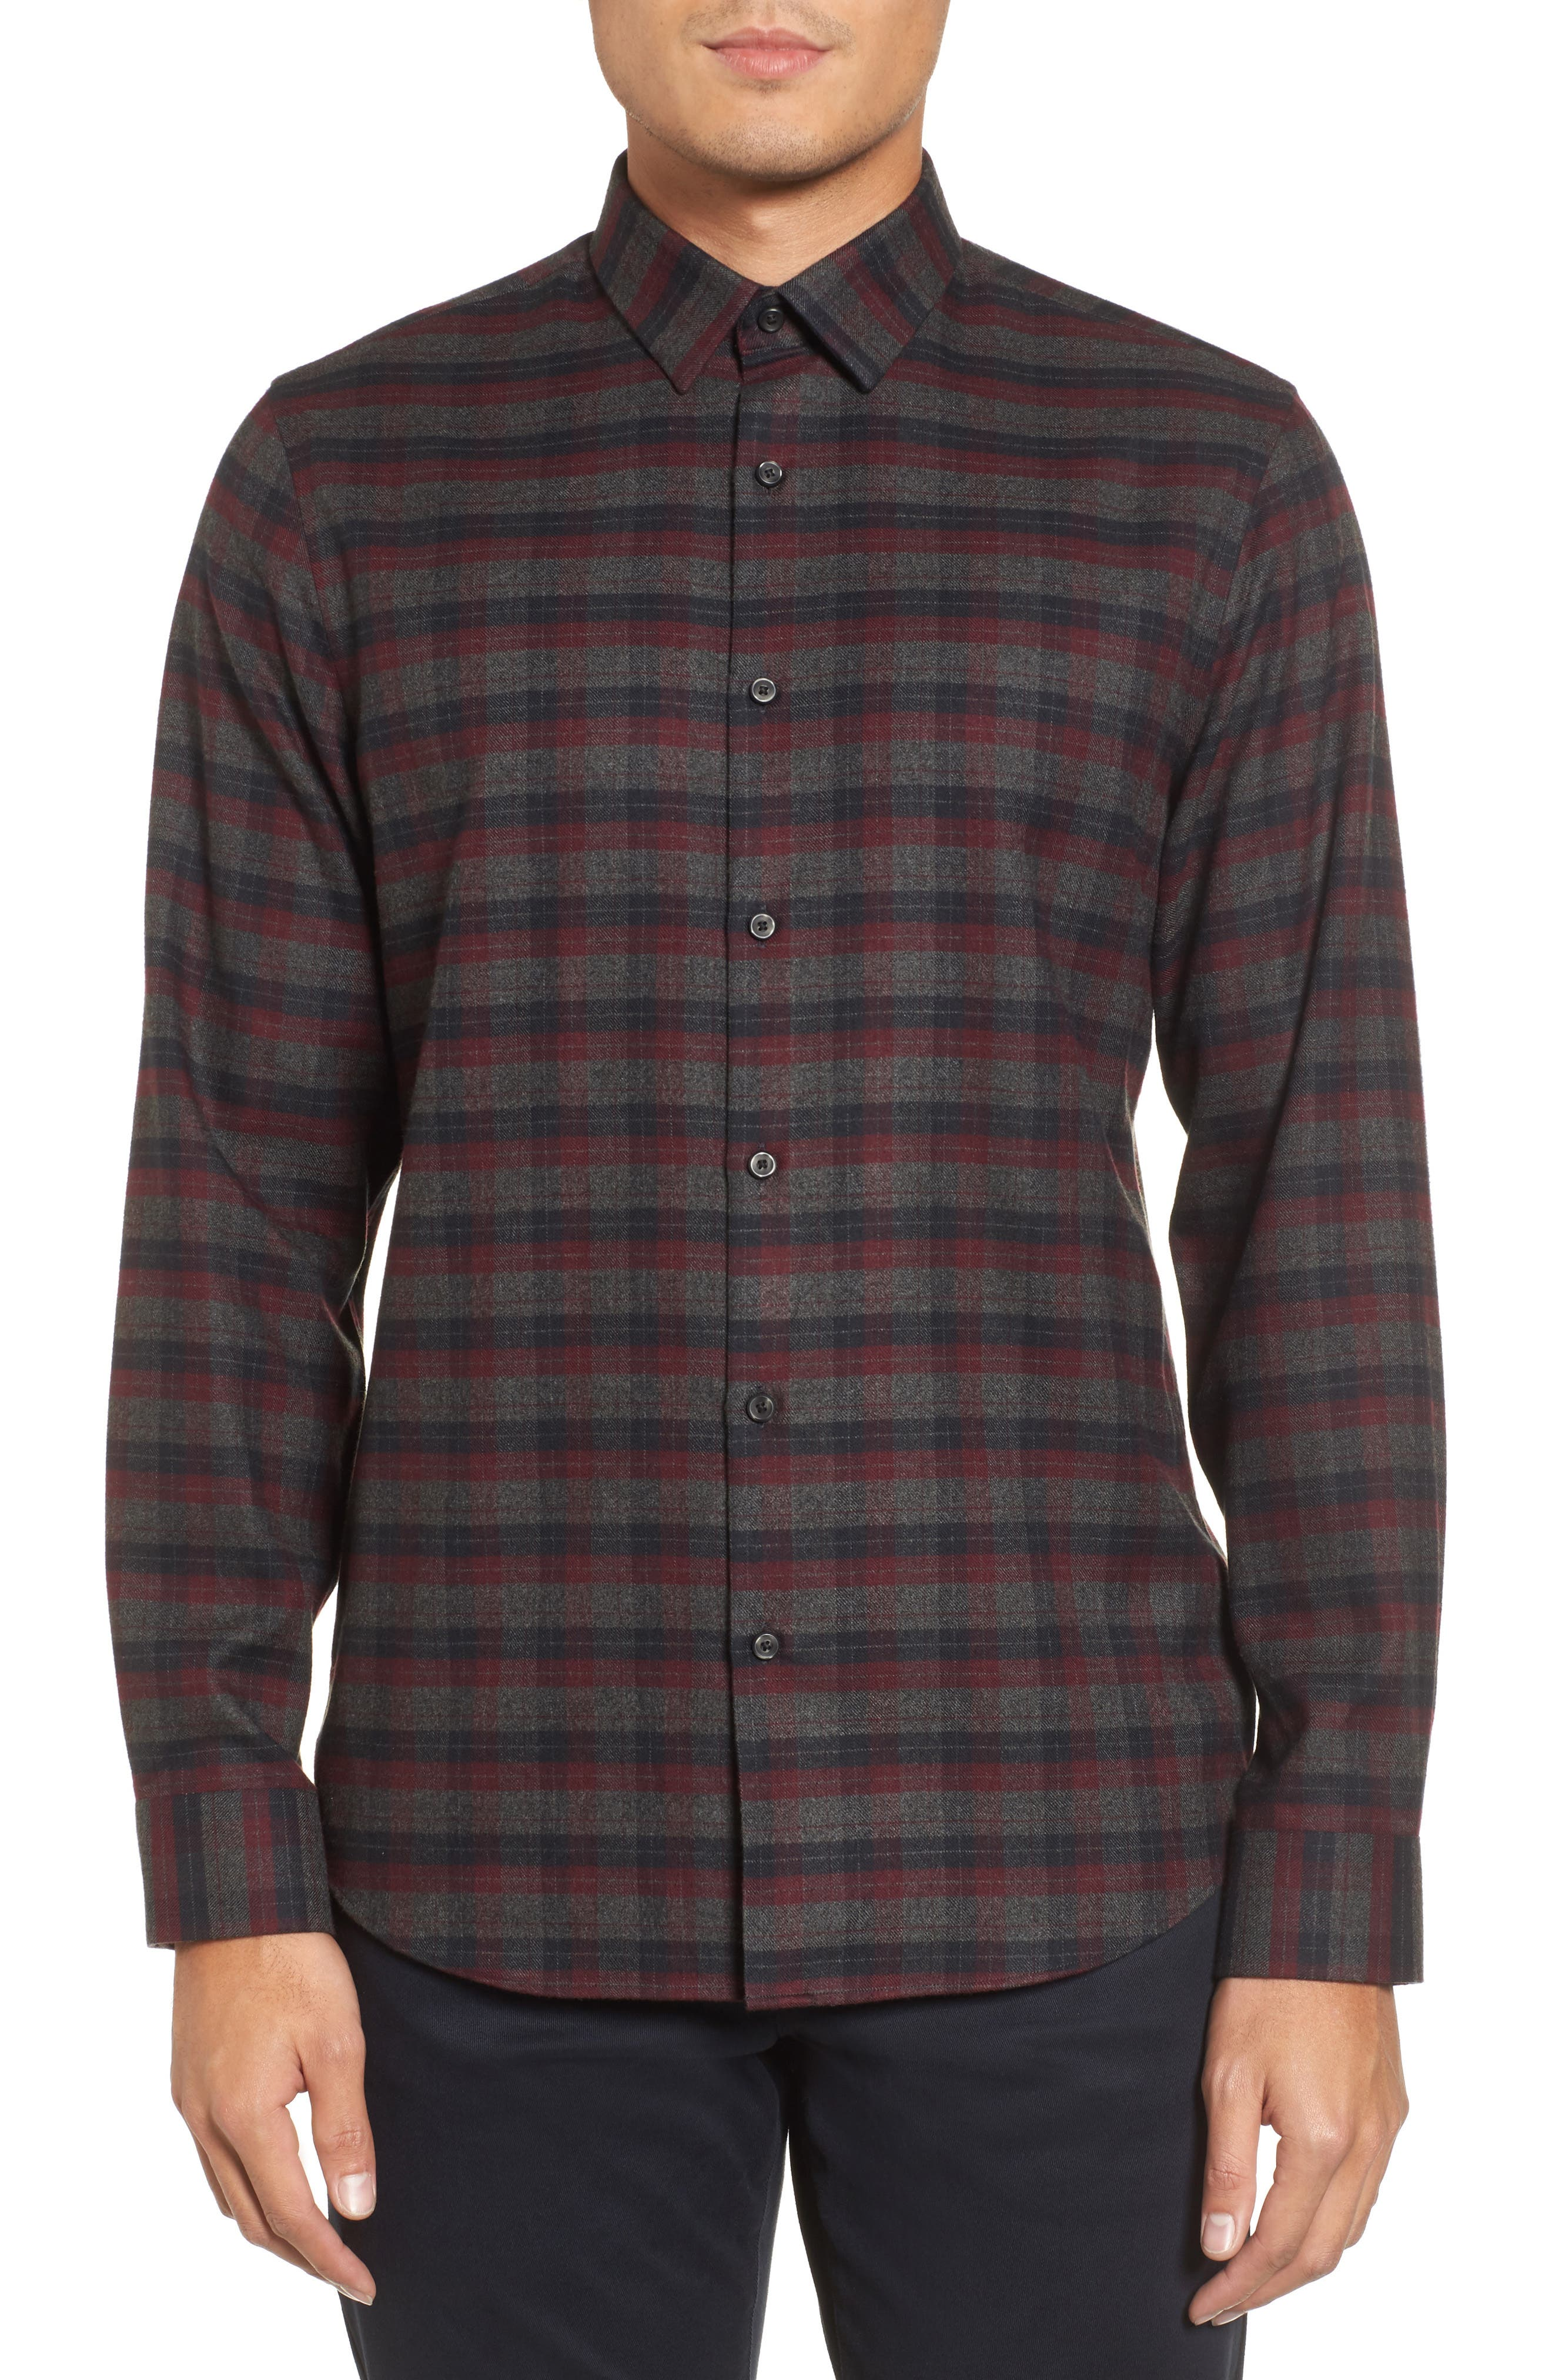 Alternate Image 1 Selected - Calibrate Check Flannel Sport Shirt